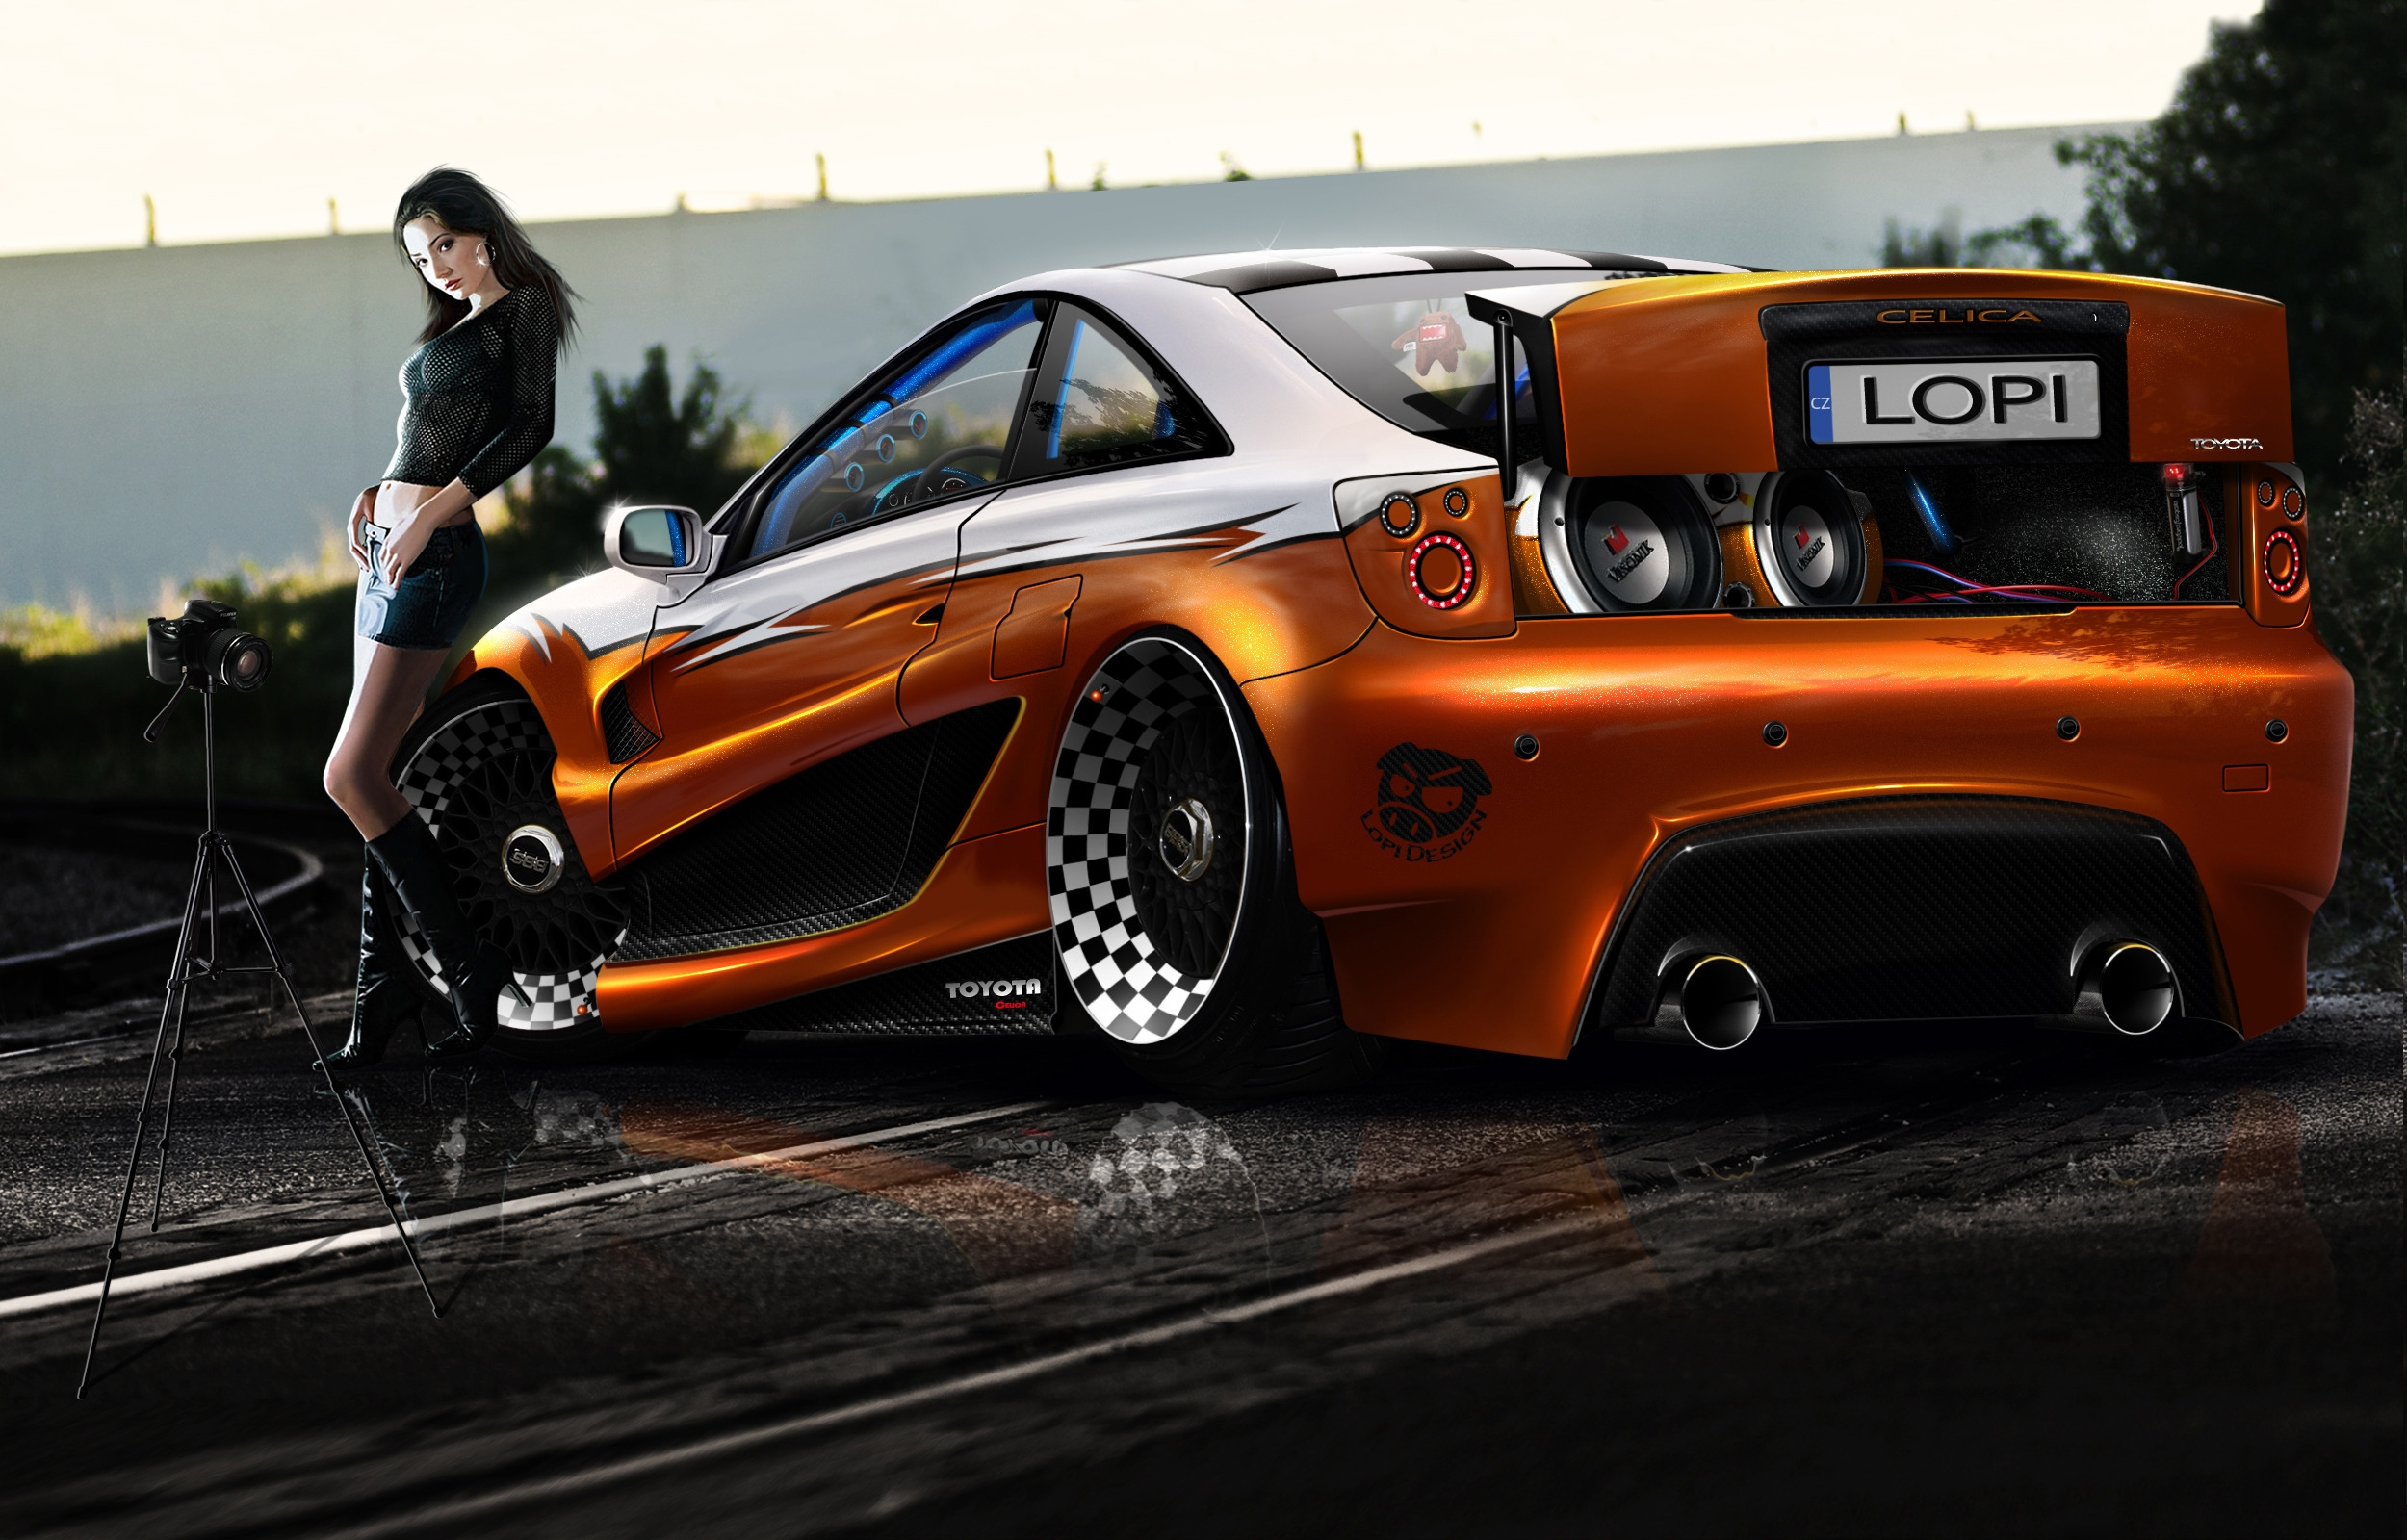 Super Tuned Toyota Celica Full HD Wallpaper And Background